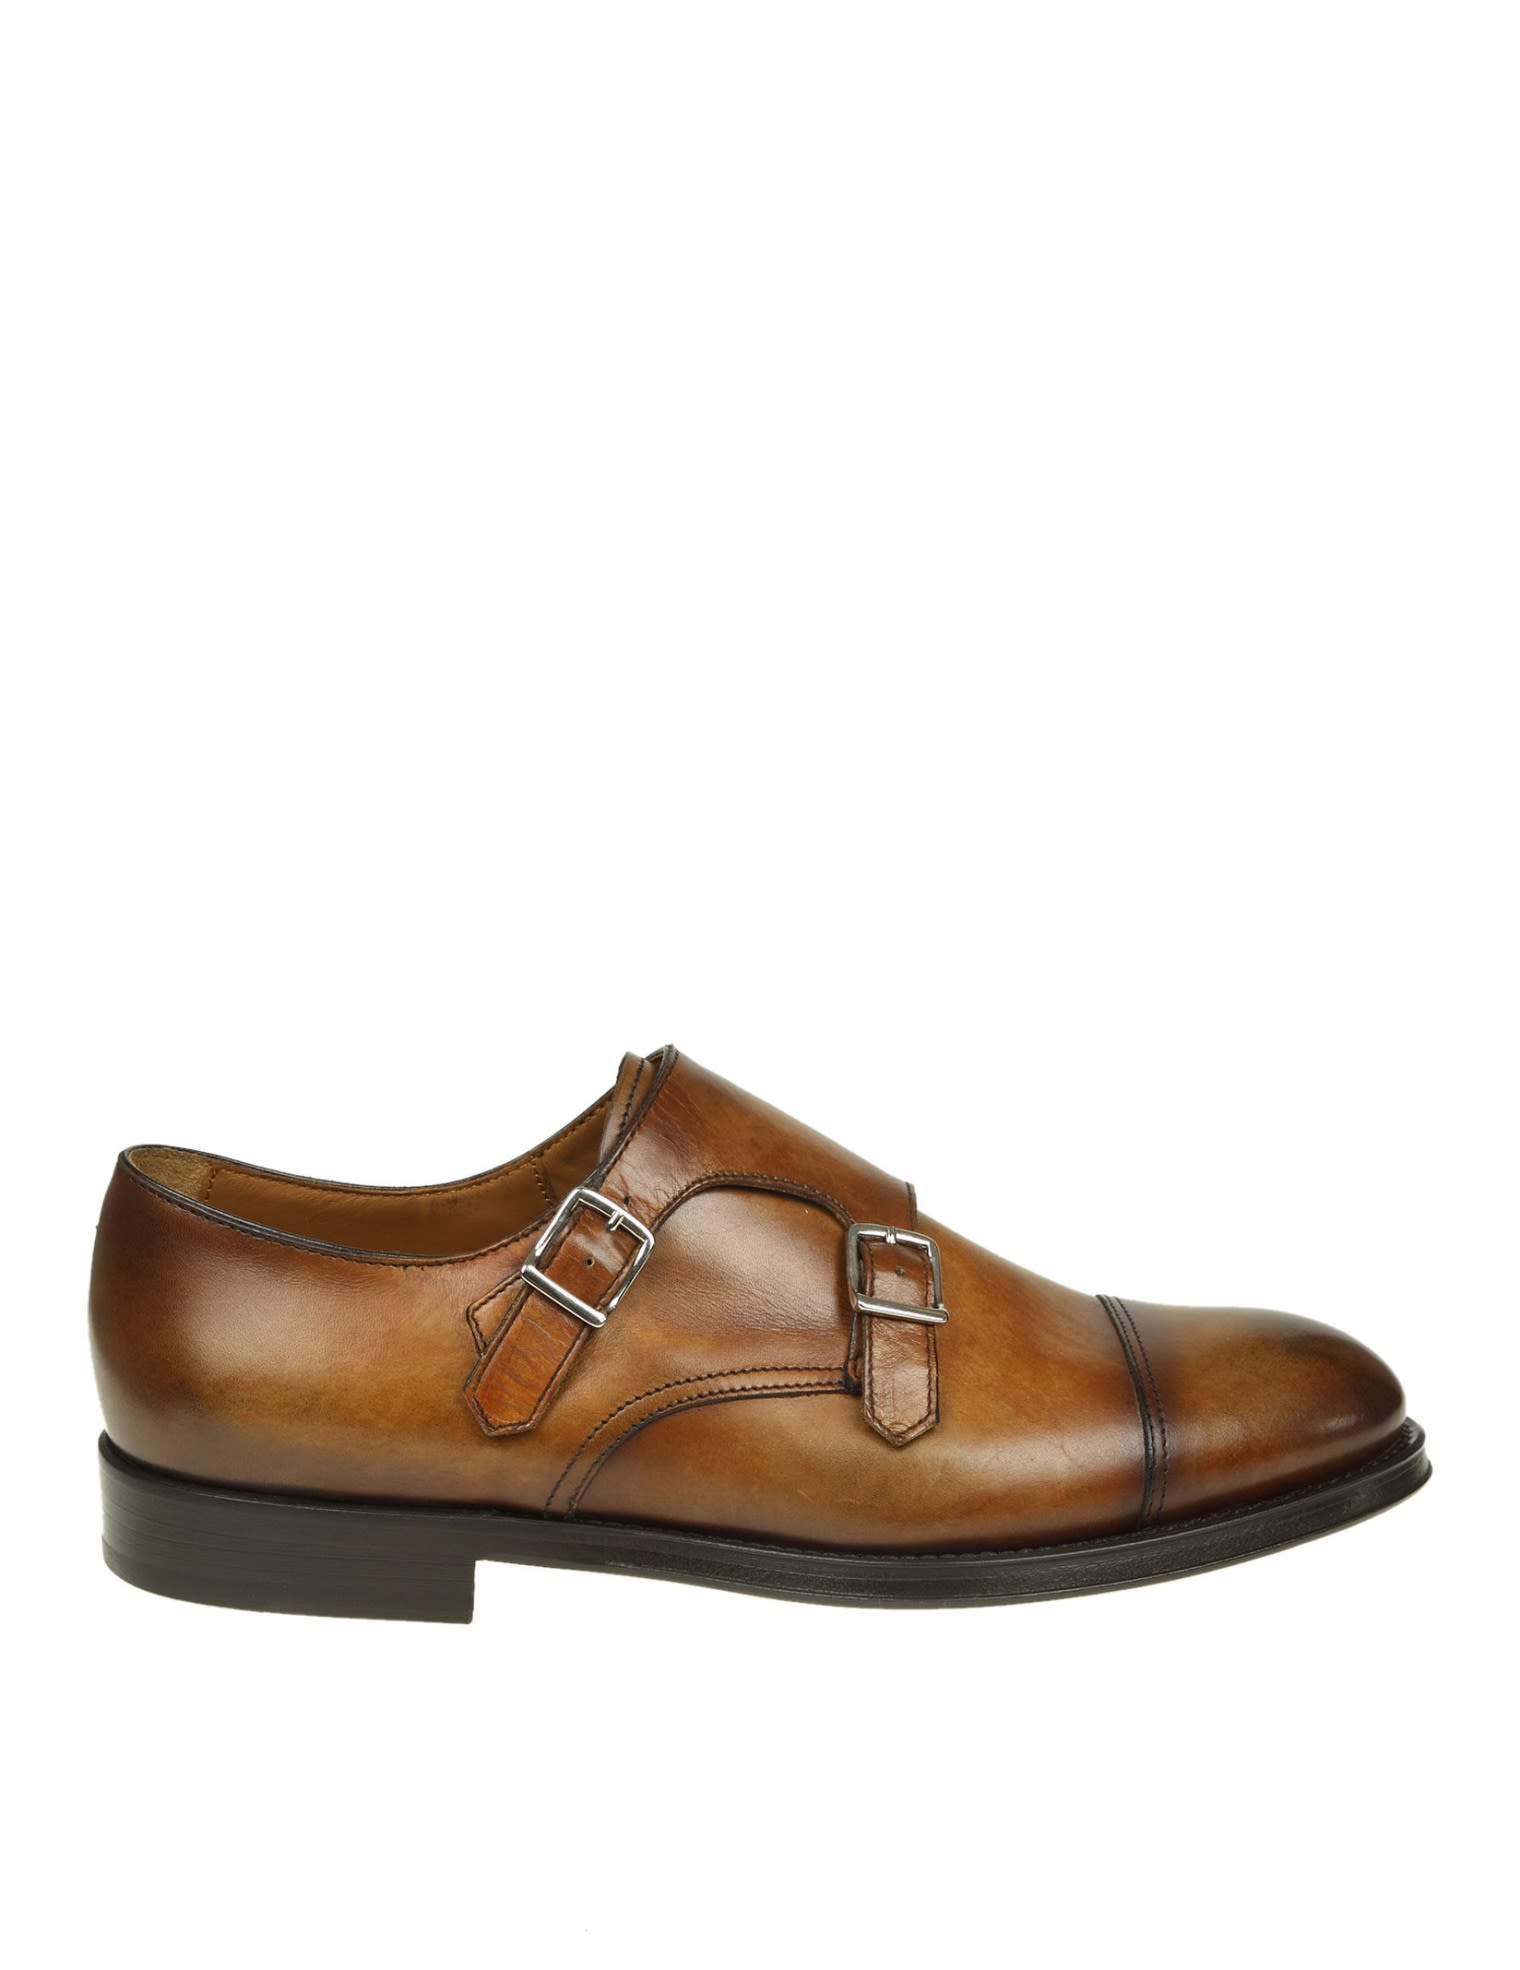 DOUCALS SHOE WITH DOUBLE BUCKLE LEATHER COLOR LEATHER